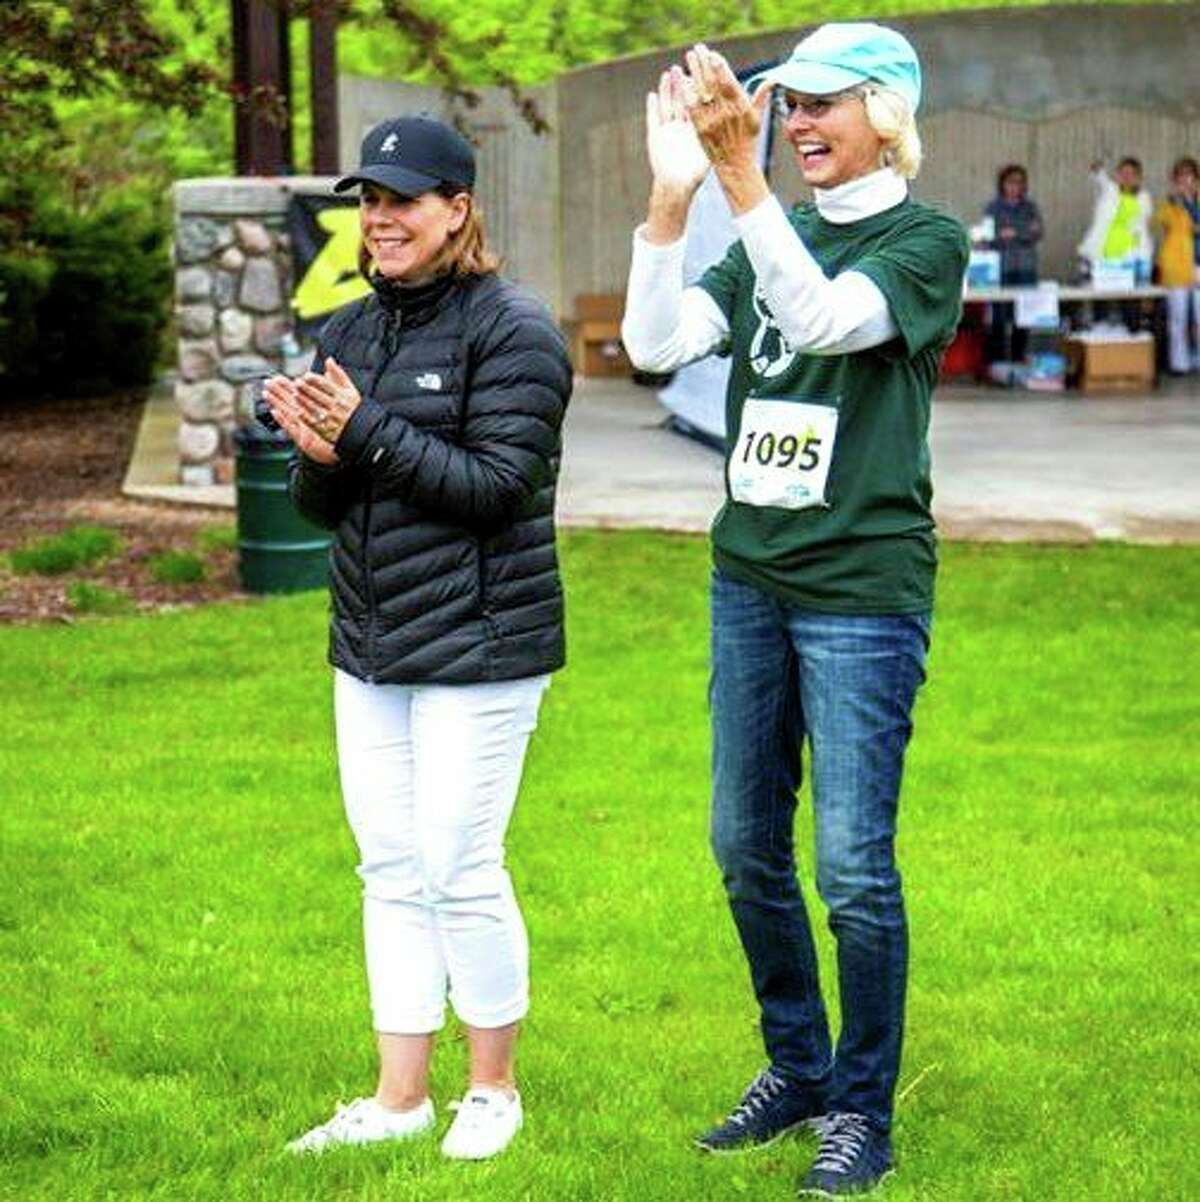 Andrea Leslie (left) is pictured cheering with Susan Wheatlake at the 2019 Wheatlake Festival of Races. (Courtesy photo)